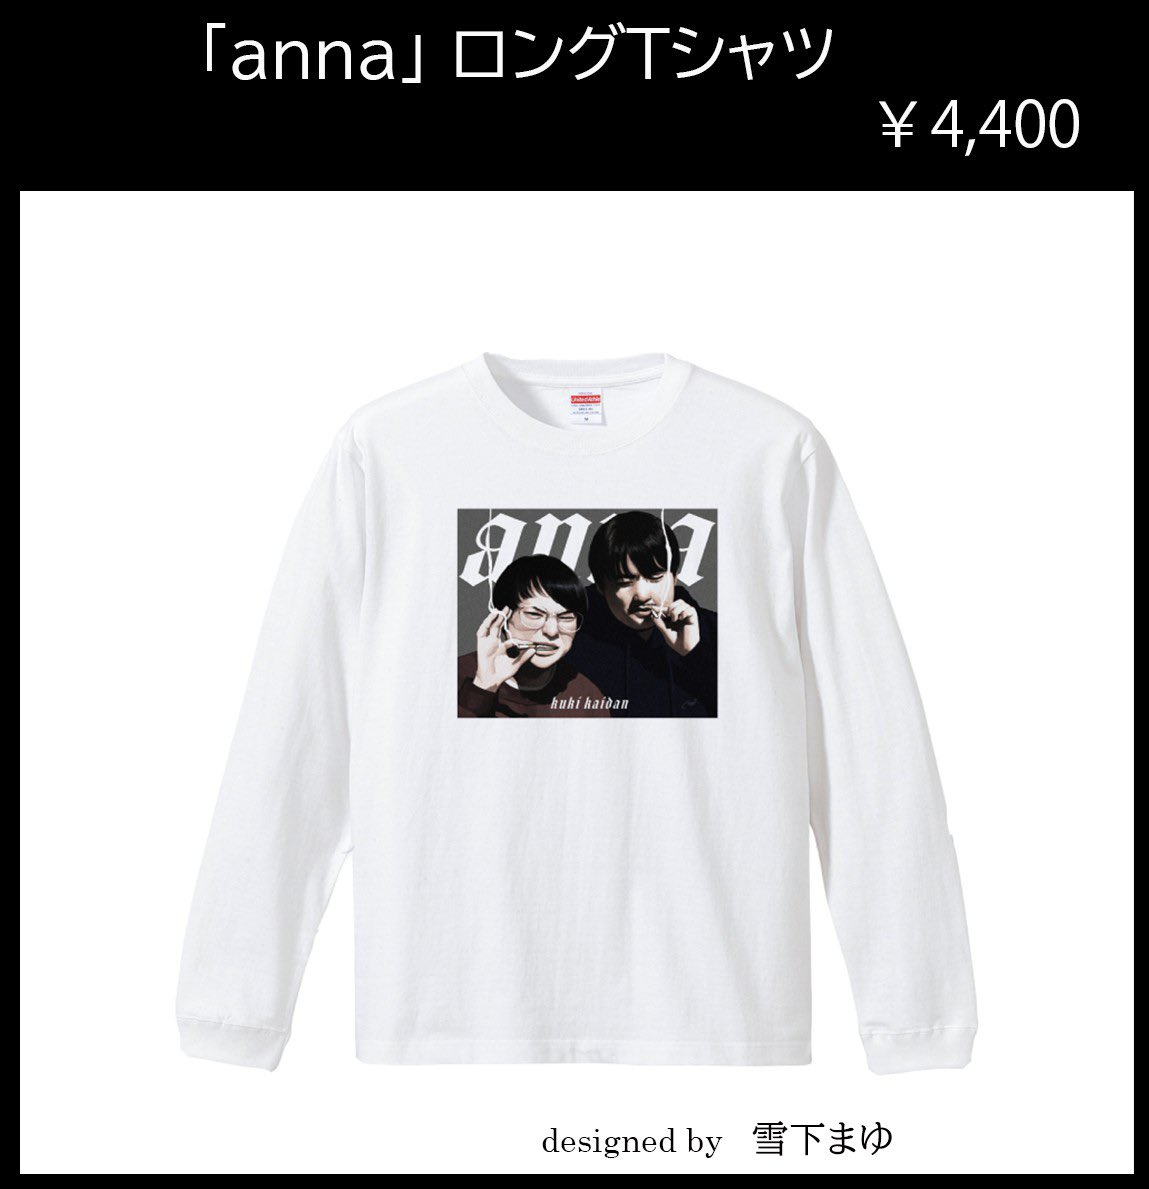 Anna グッズ 階段 空気